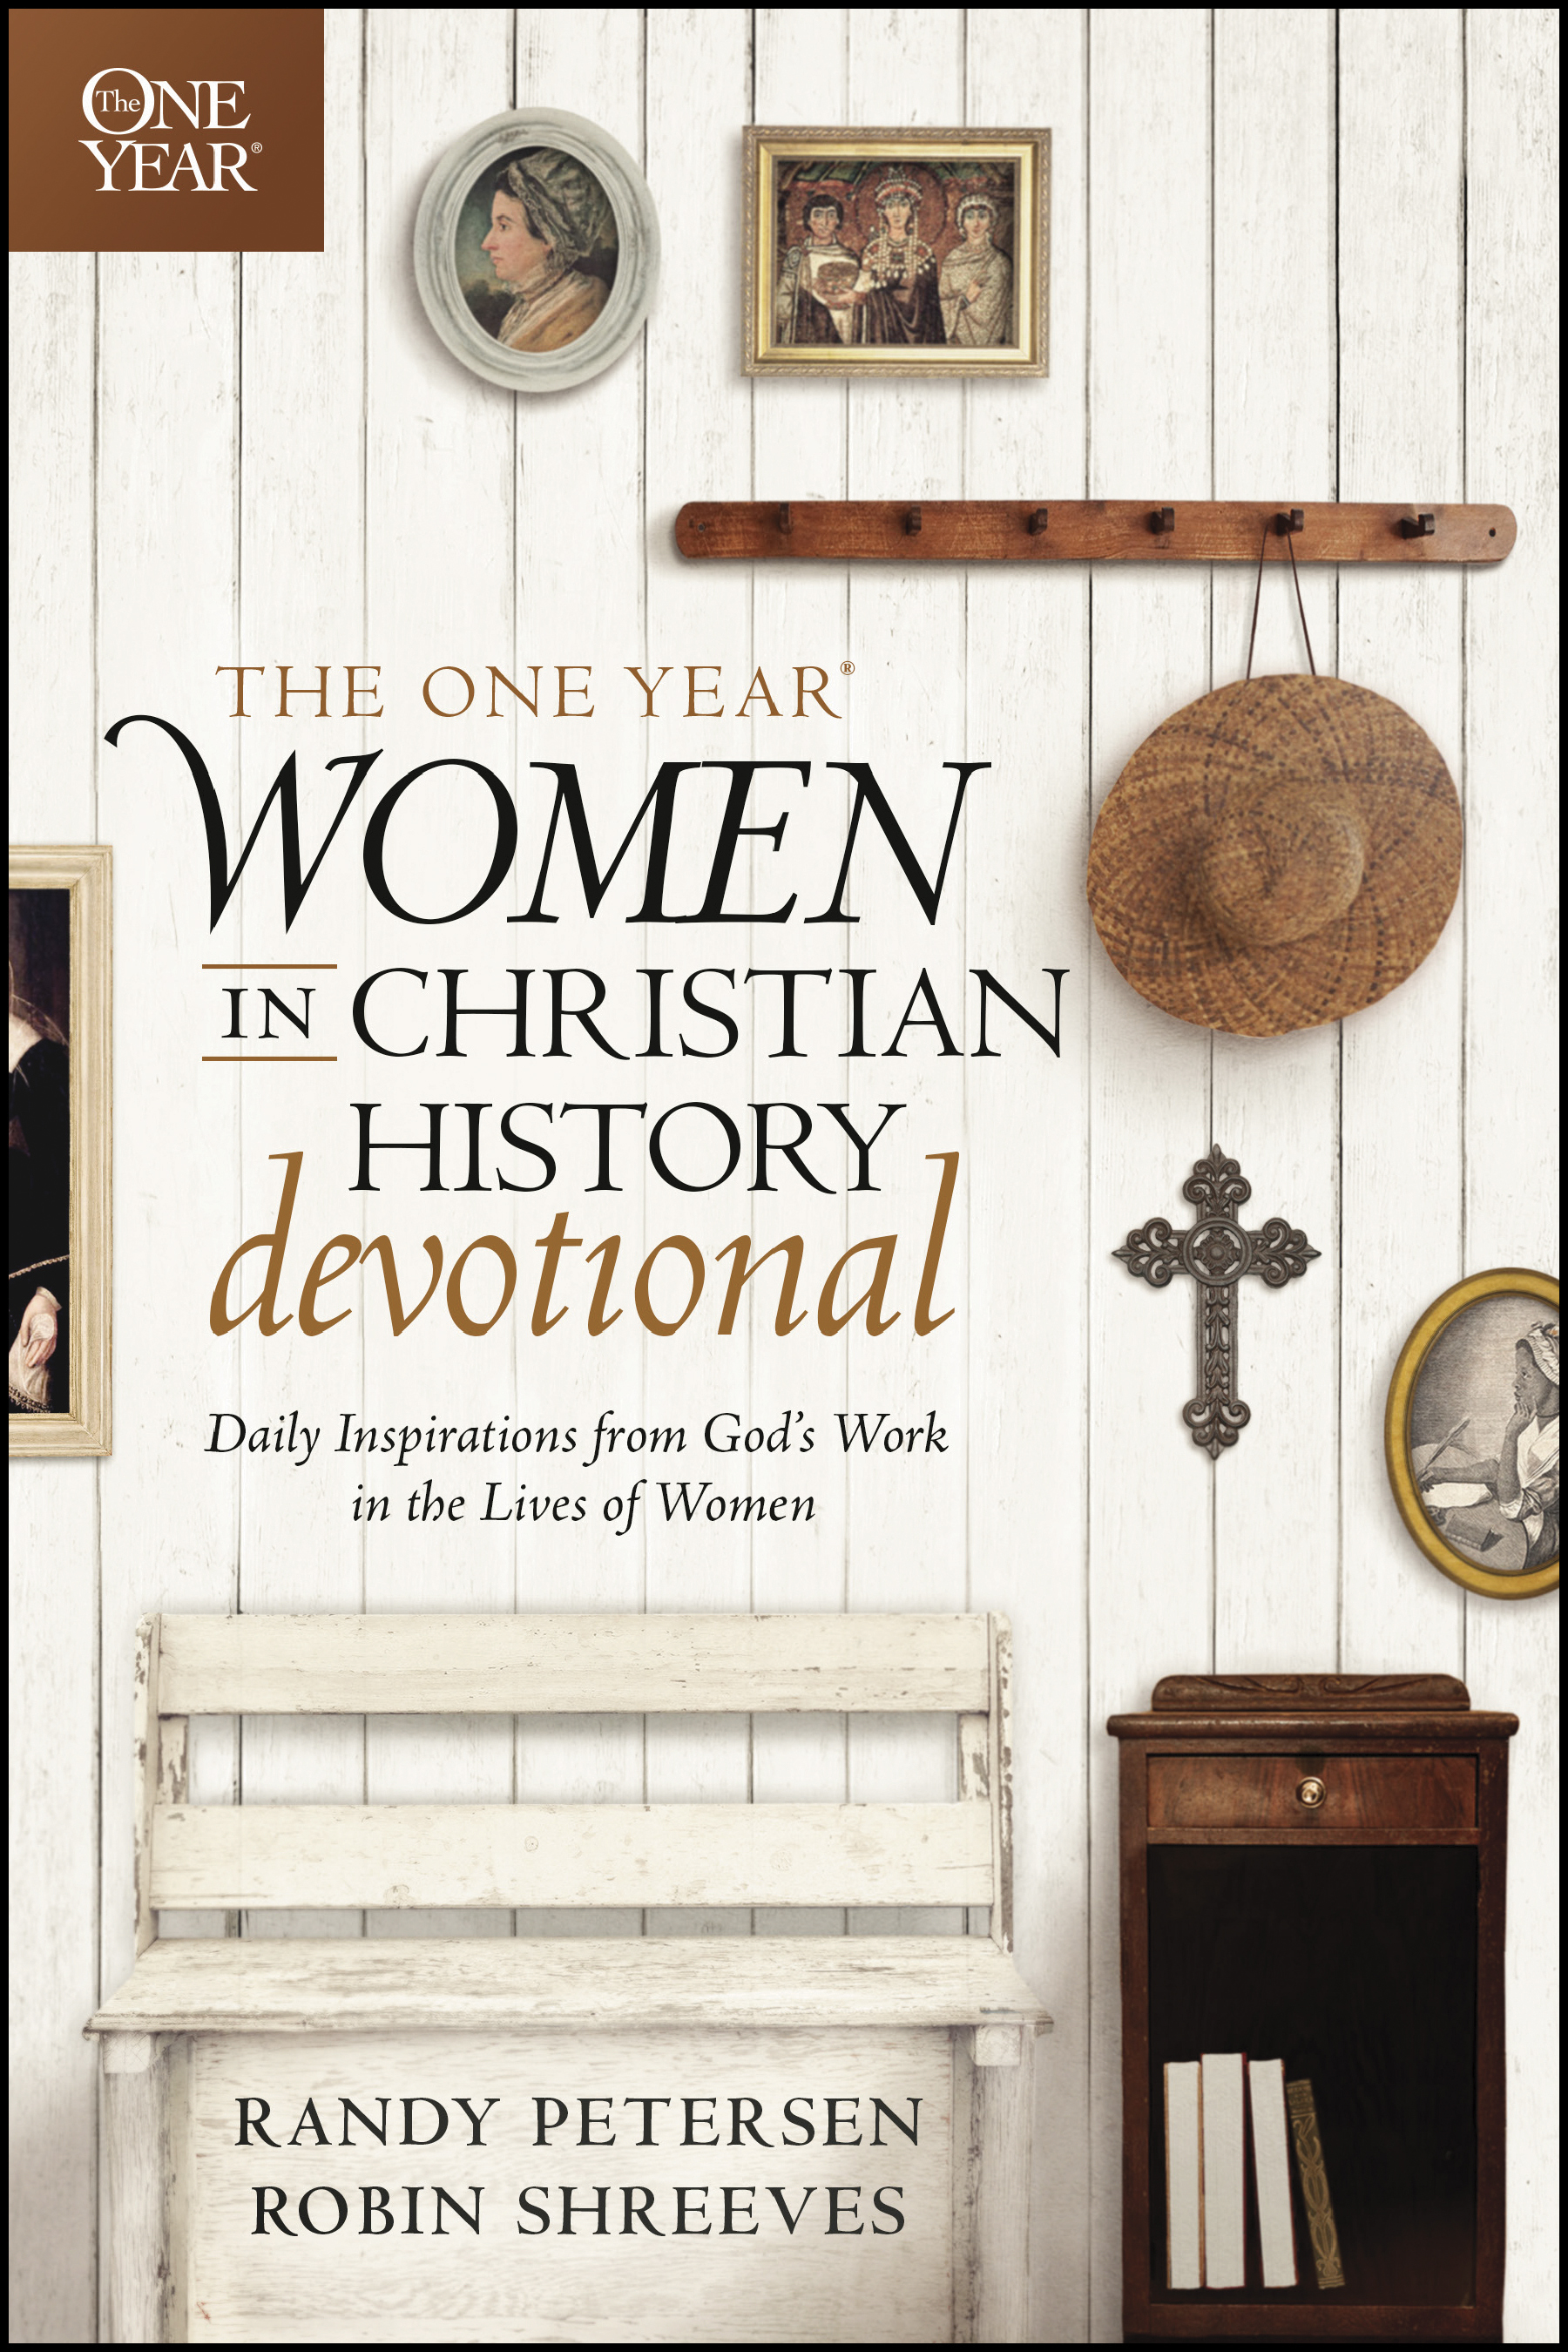 the role of women in the christian church Home / who we are / history / timeline of women in methodism of christian service of the methodist church petitions status and role of women as a.